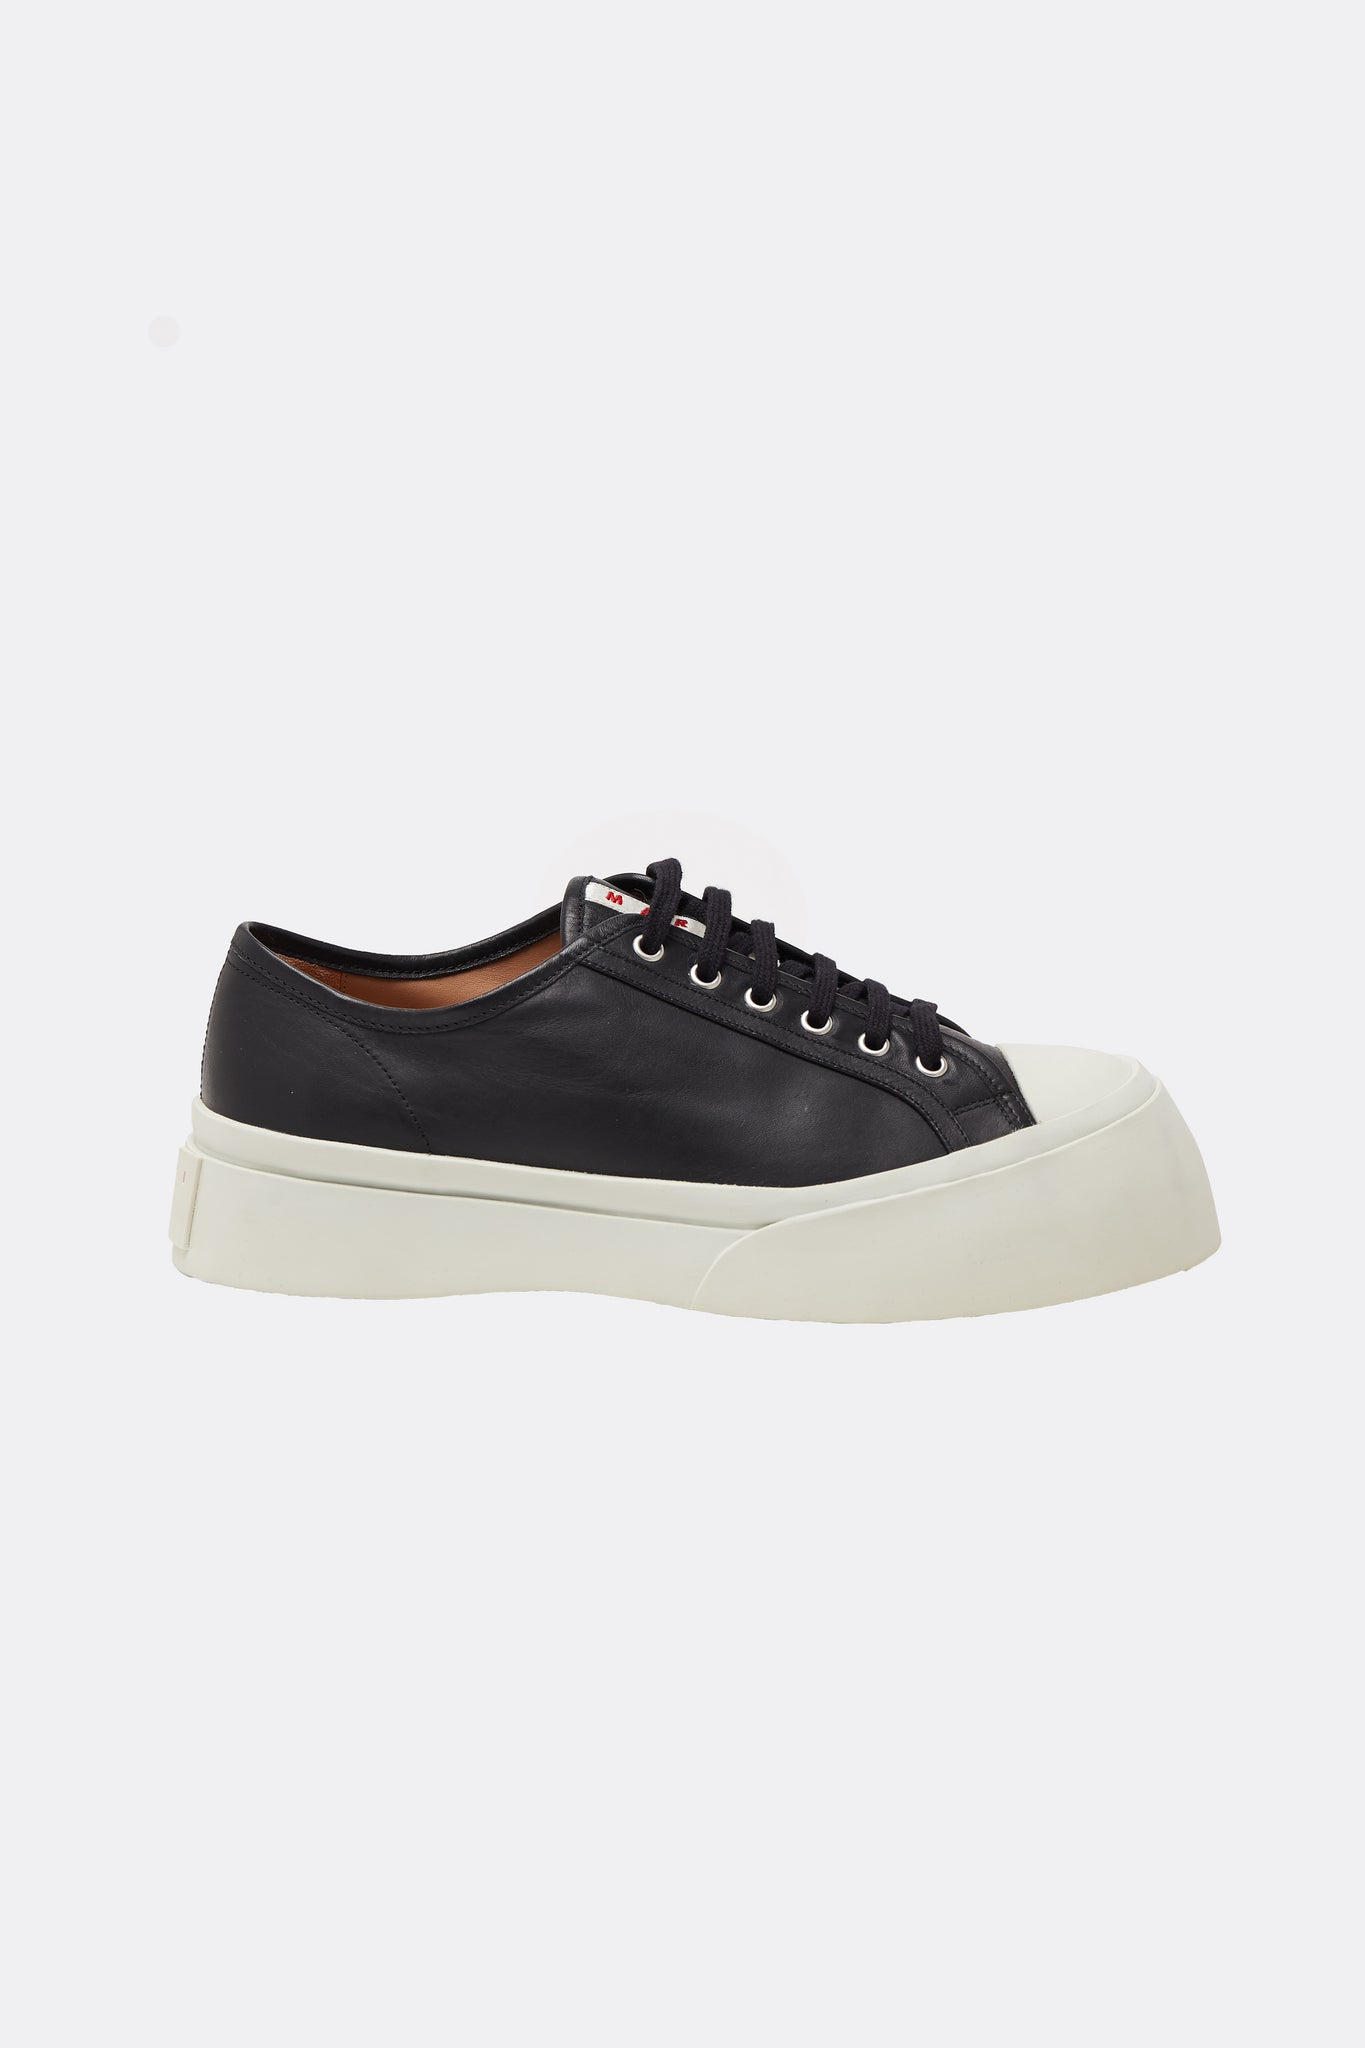 PABLO SNEAKERS Black